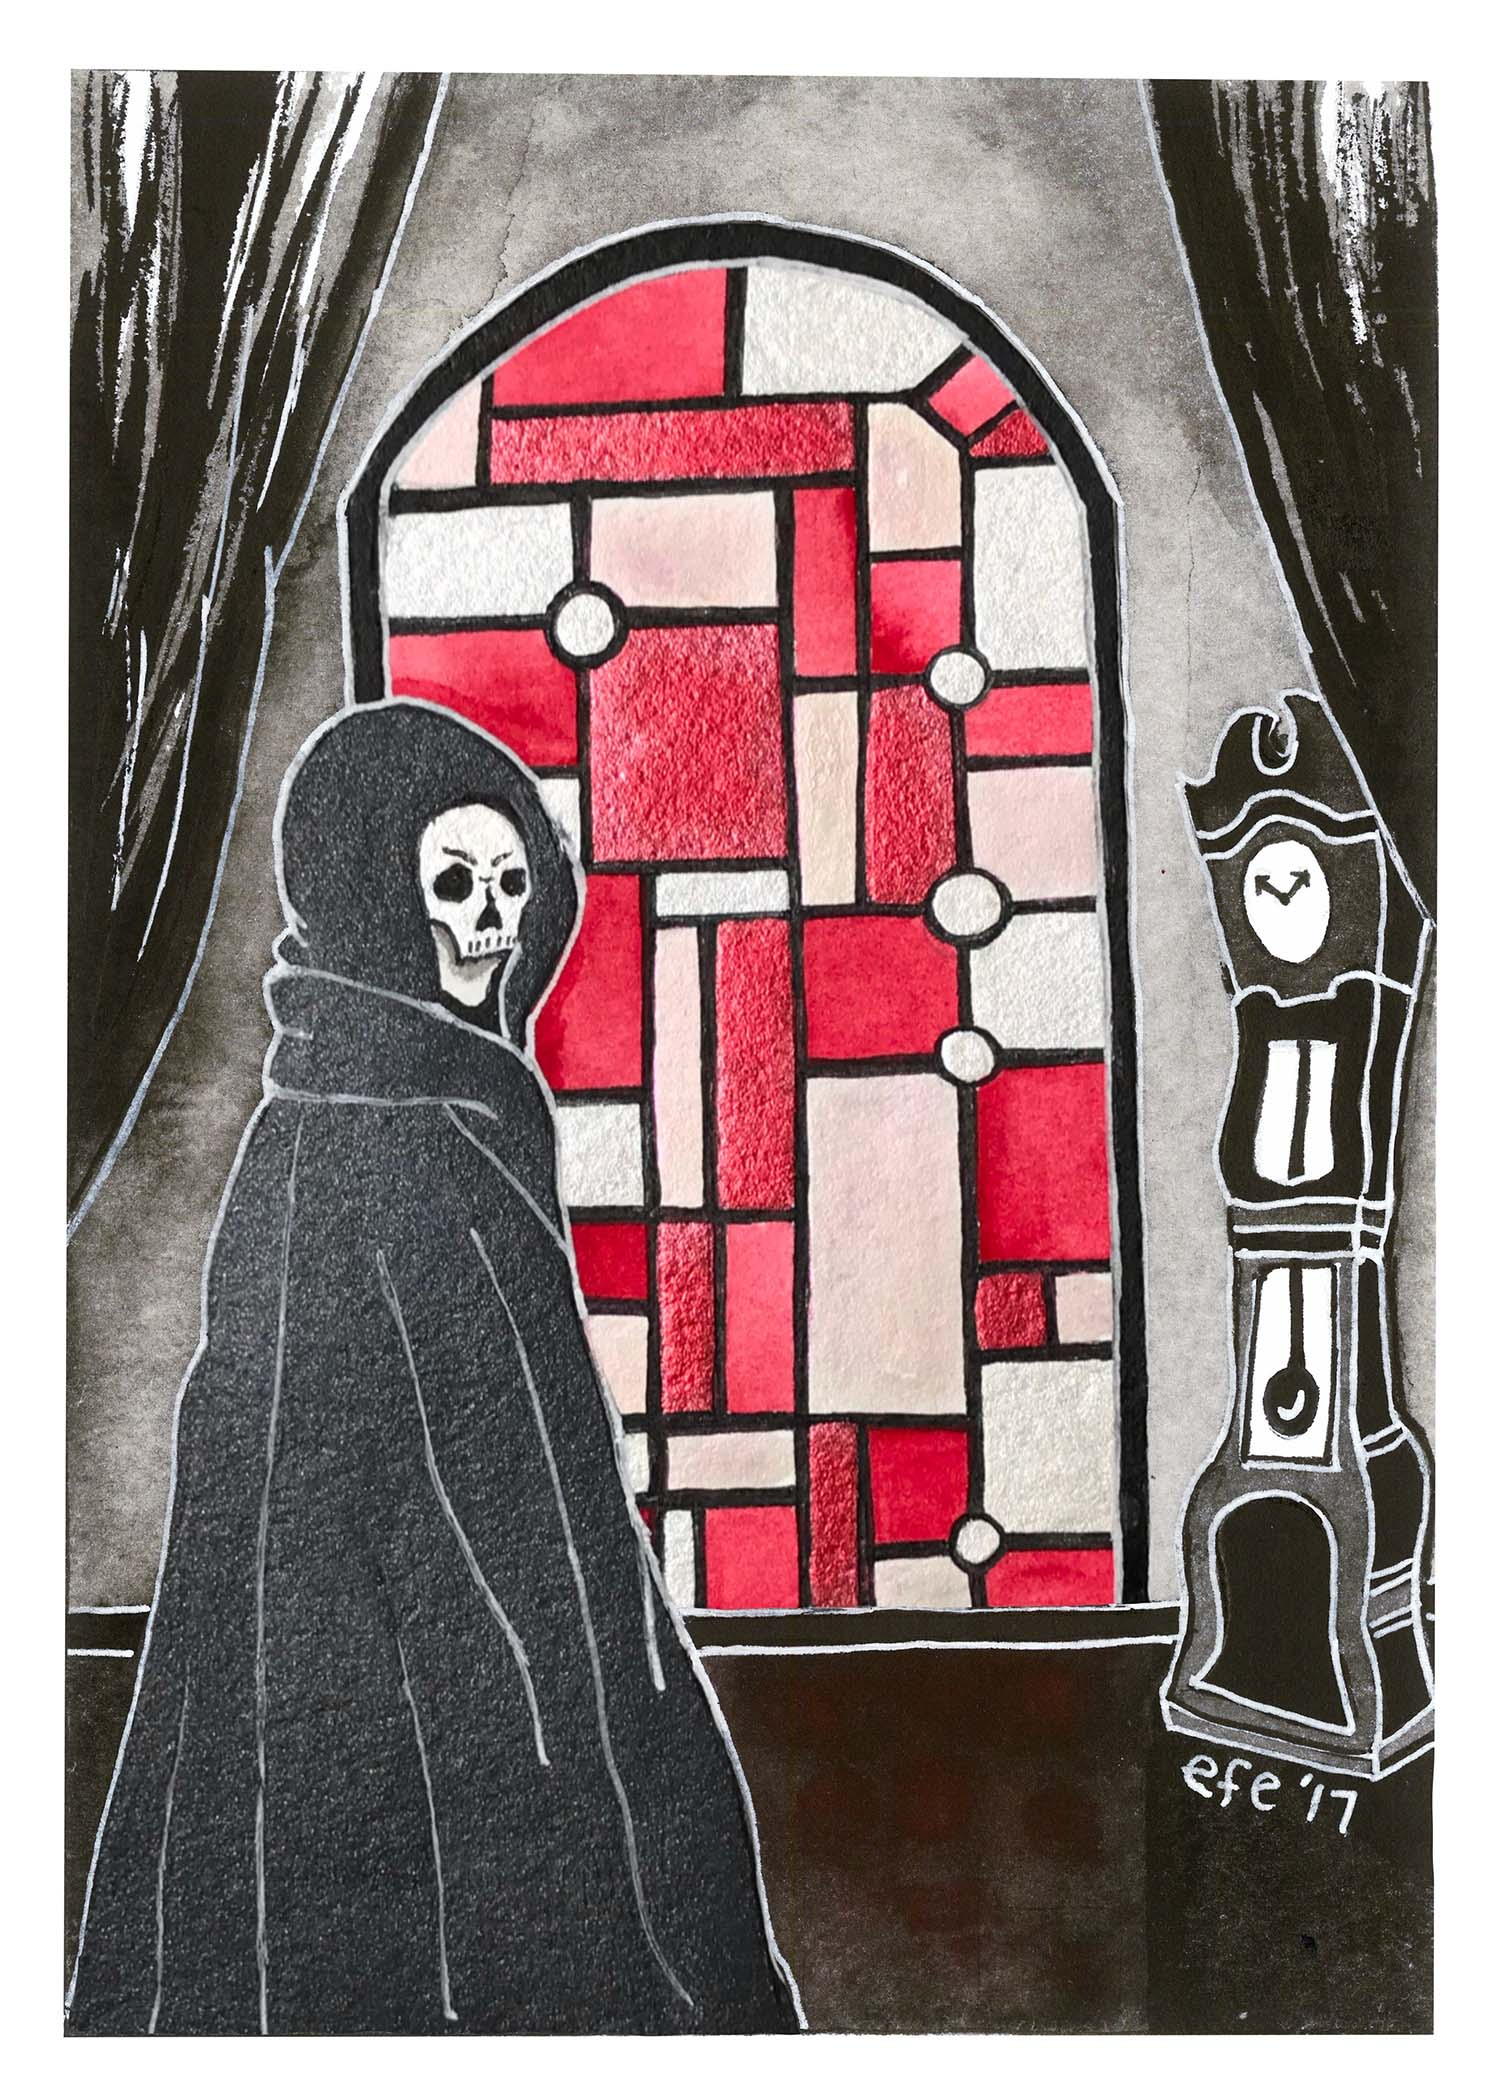 Day 08 - The Masque of the Red Death